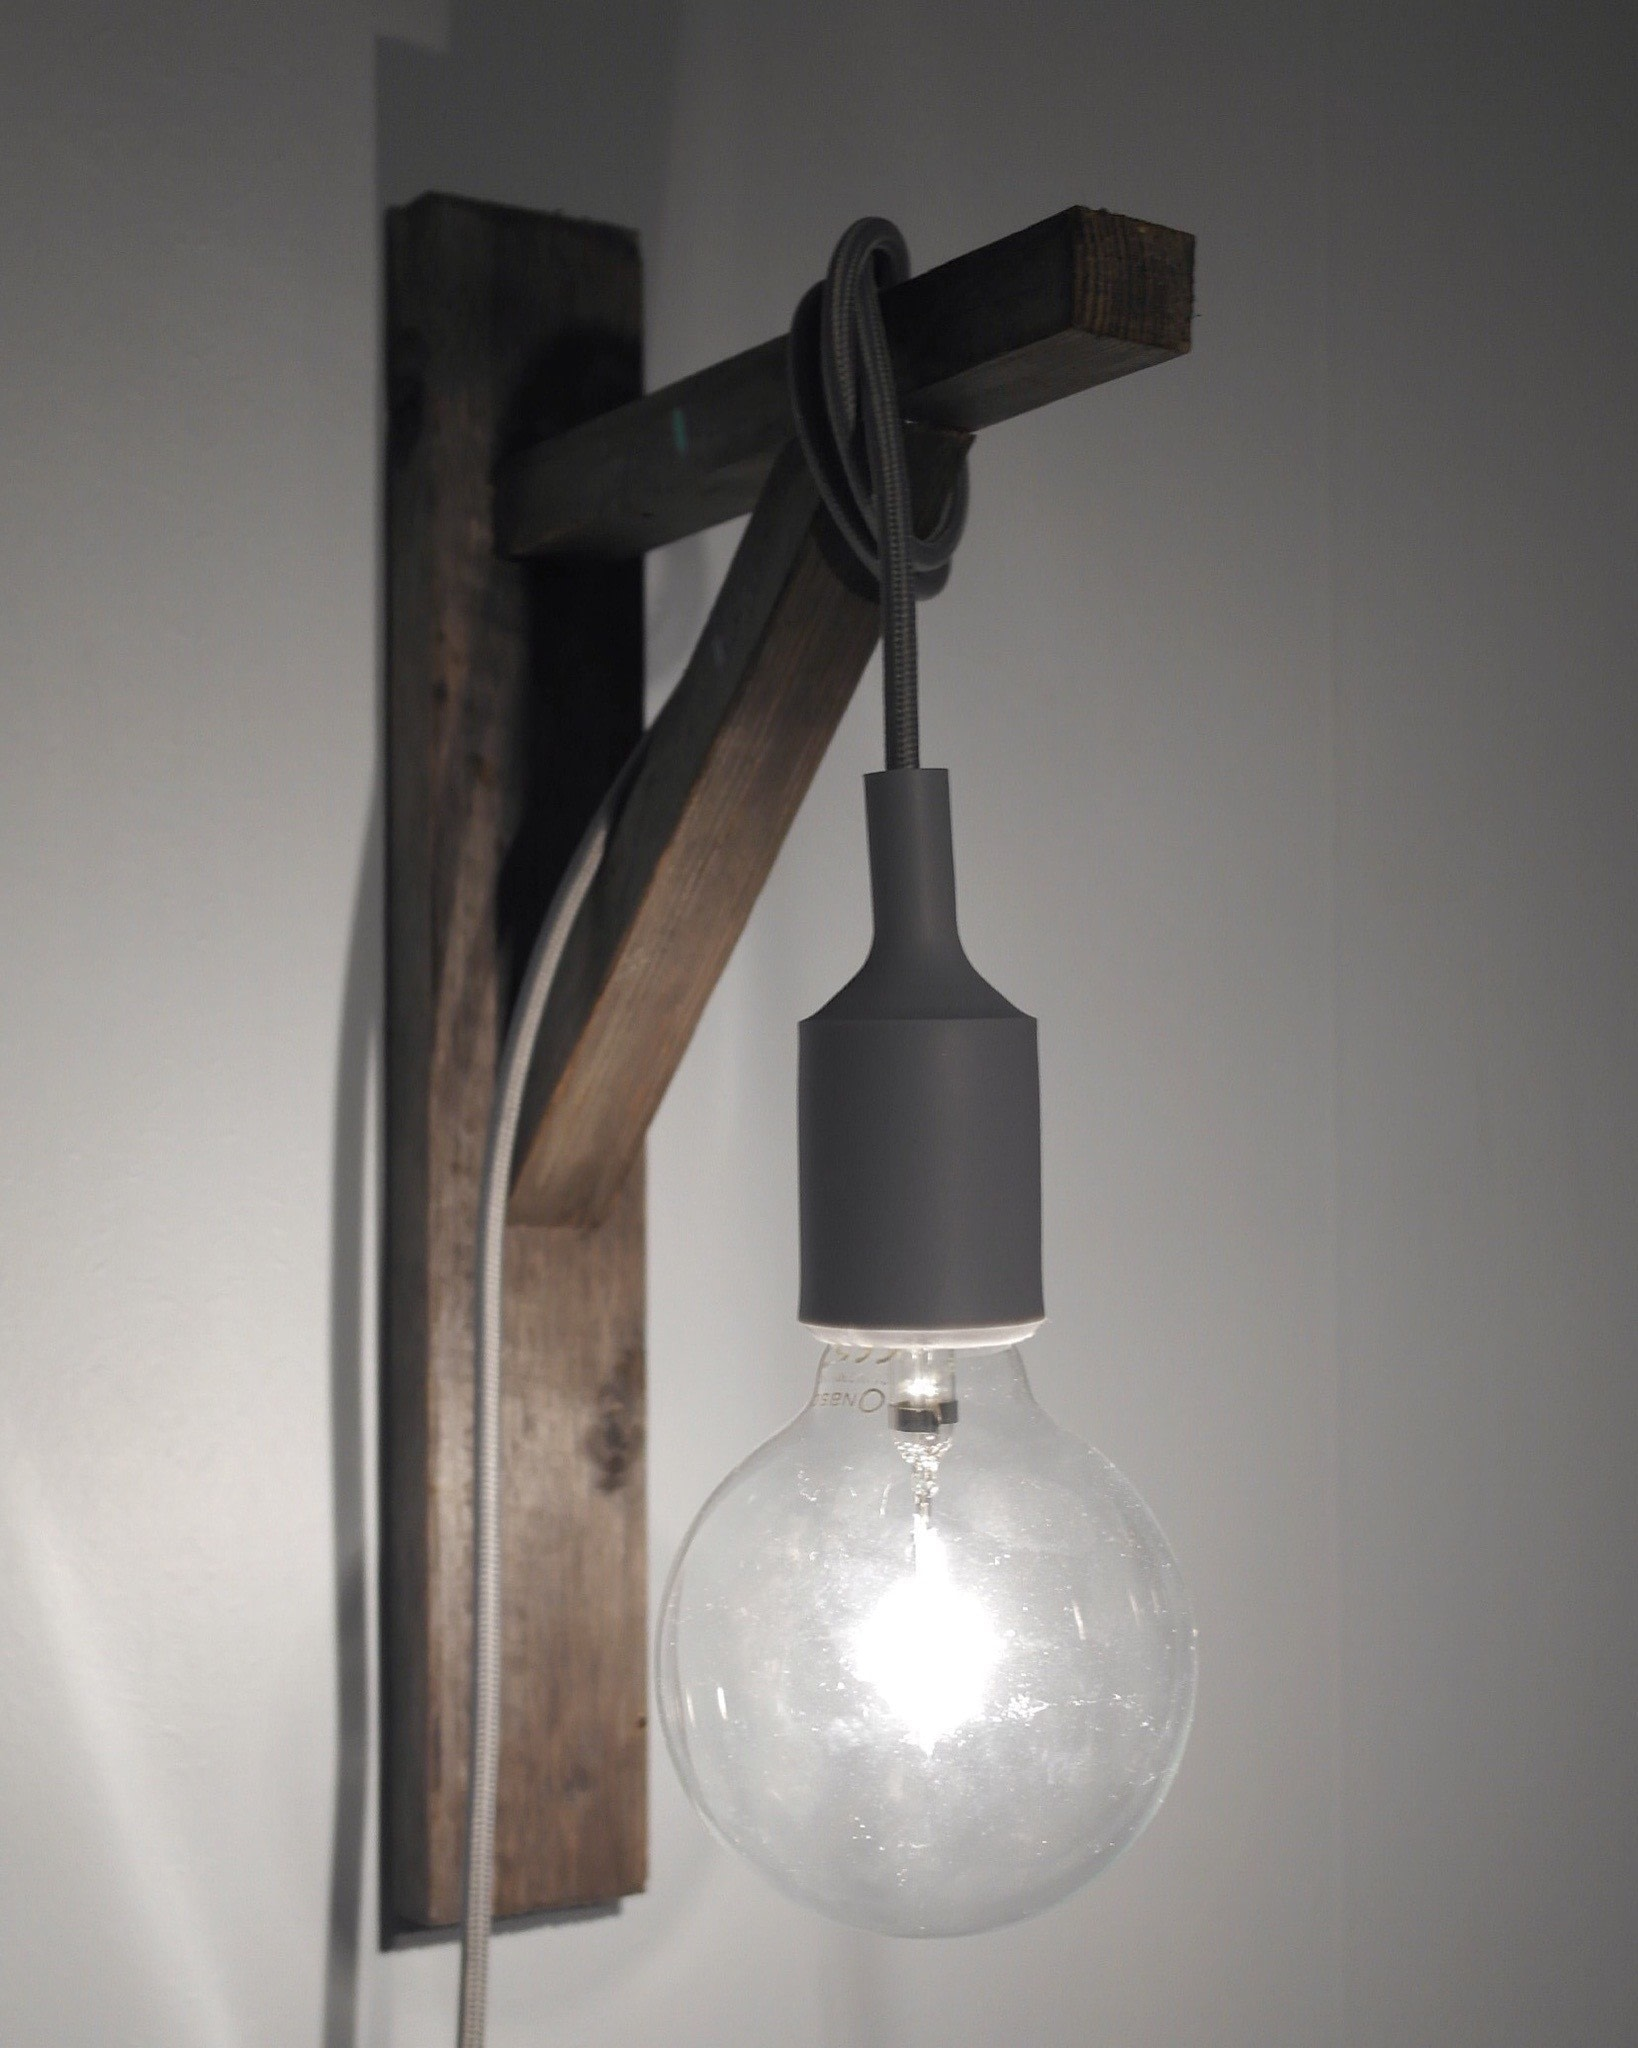 Delightful Bedroom Lamp . Free Tutorial With Pictures On How To Make A Lamp /  Lampshade In